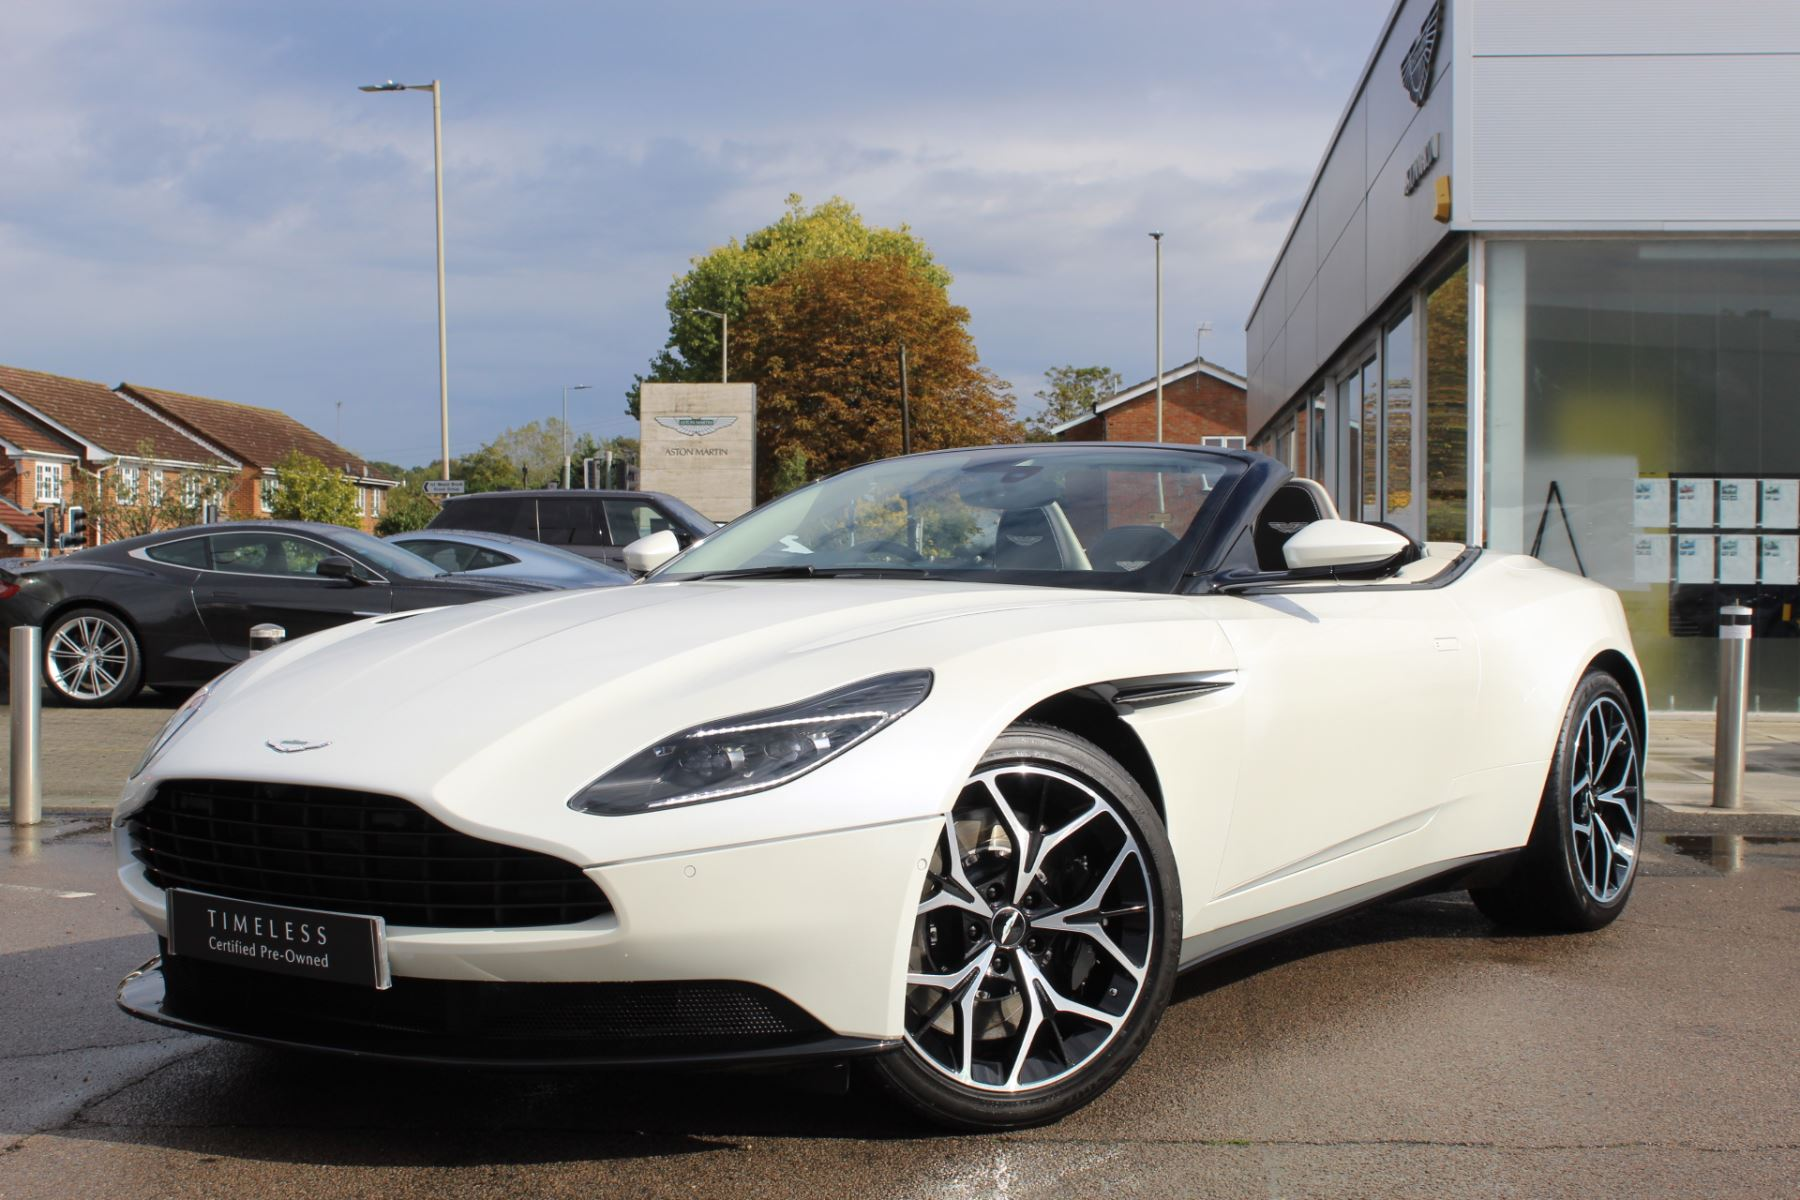 Used Aston Martin Db11 Volante Bentley Chelmsford Cars For Sale Grange